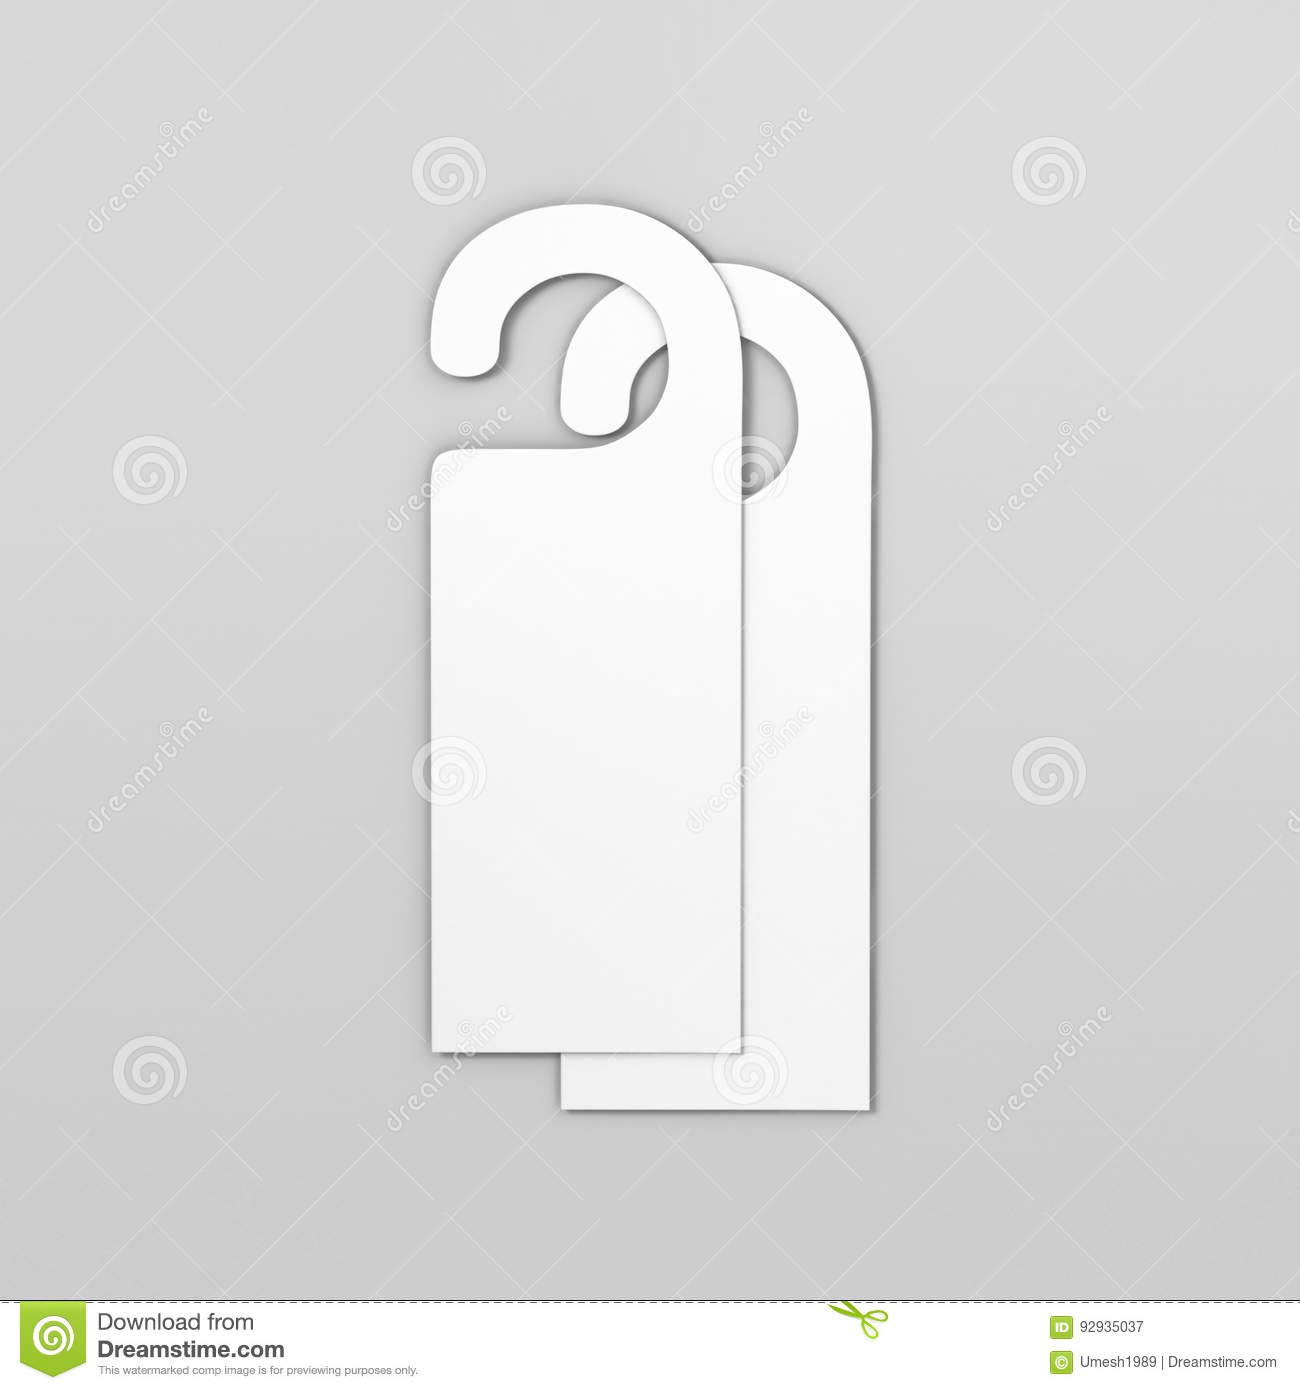 Door Hang Tags Stock Illustrations – 108 Door Hang Tags Stock ...